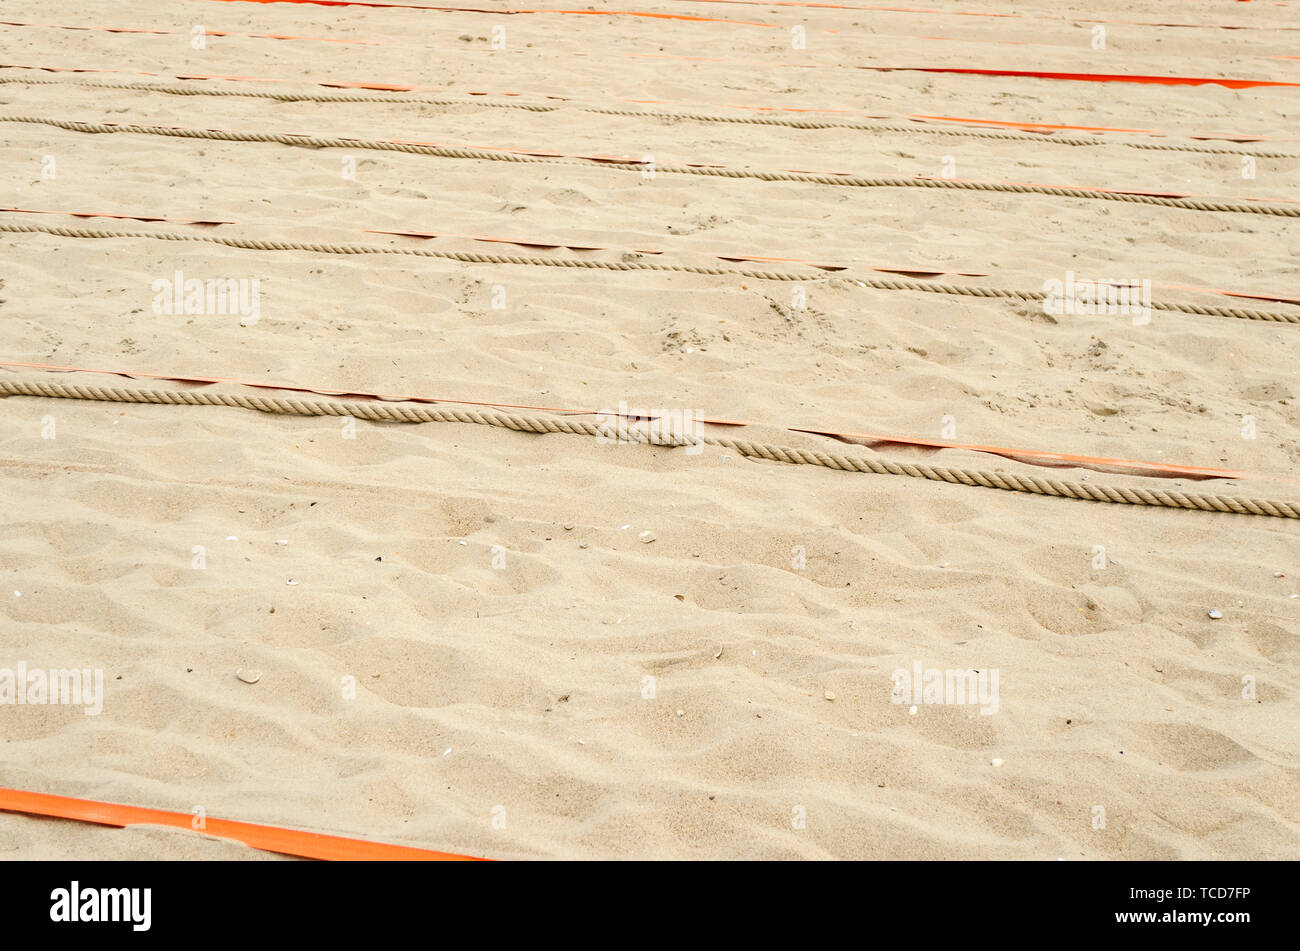 Prepared sand for sports on the beach. - Stock Image